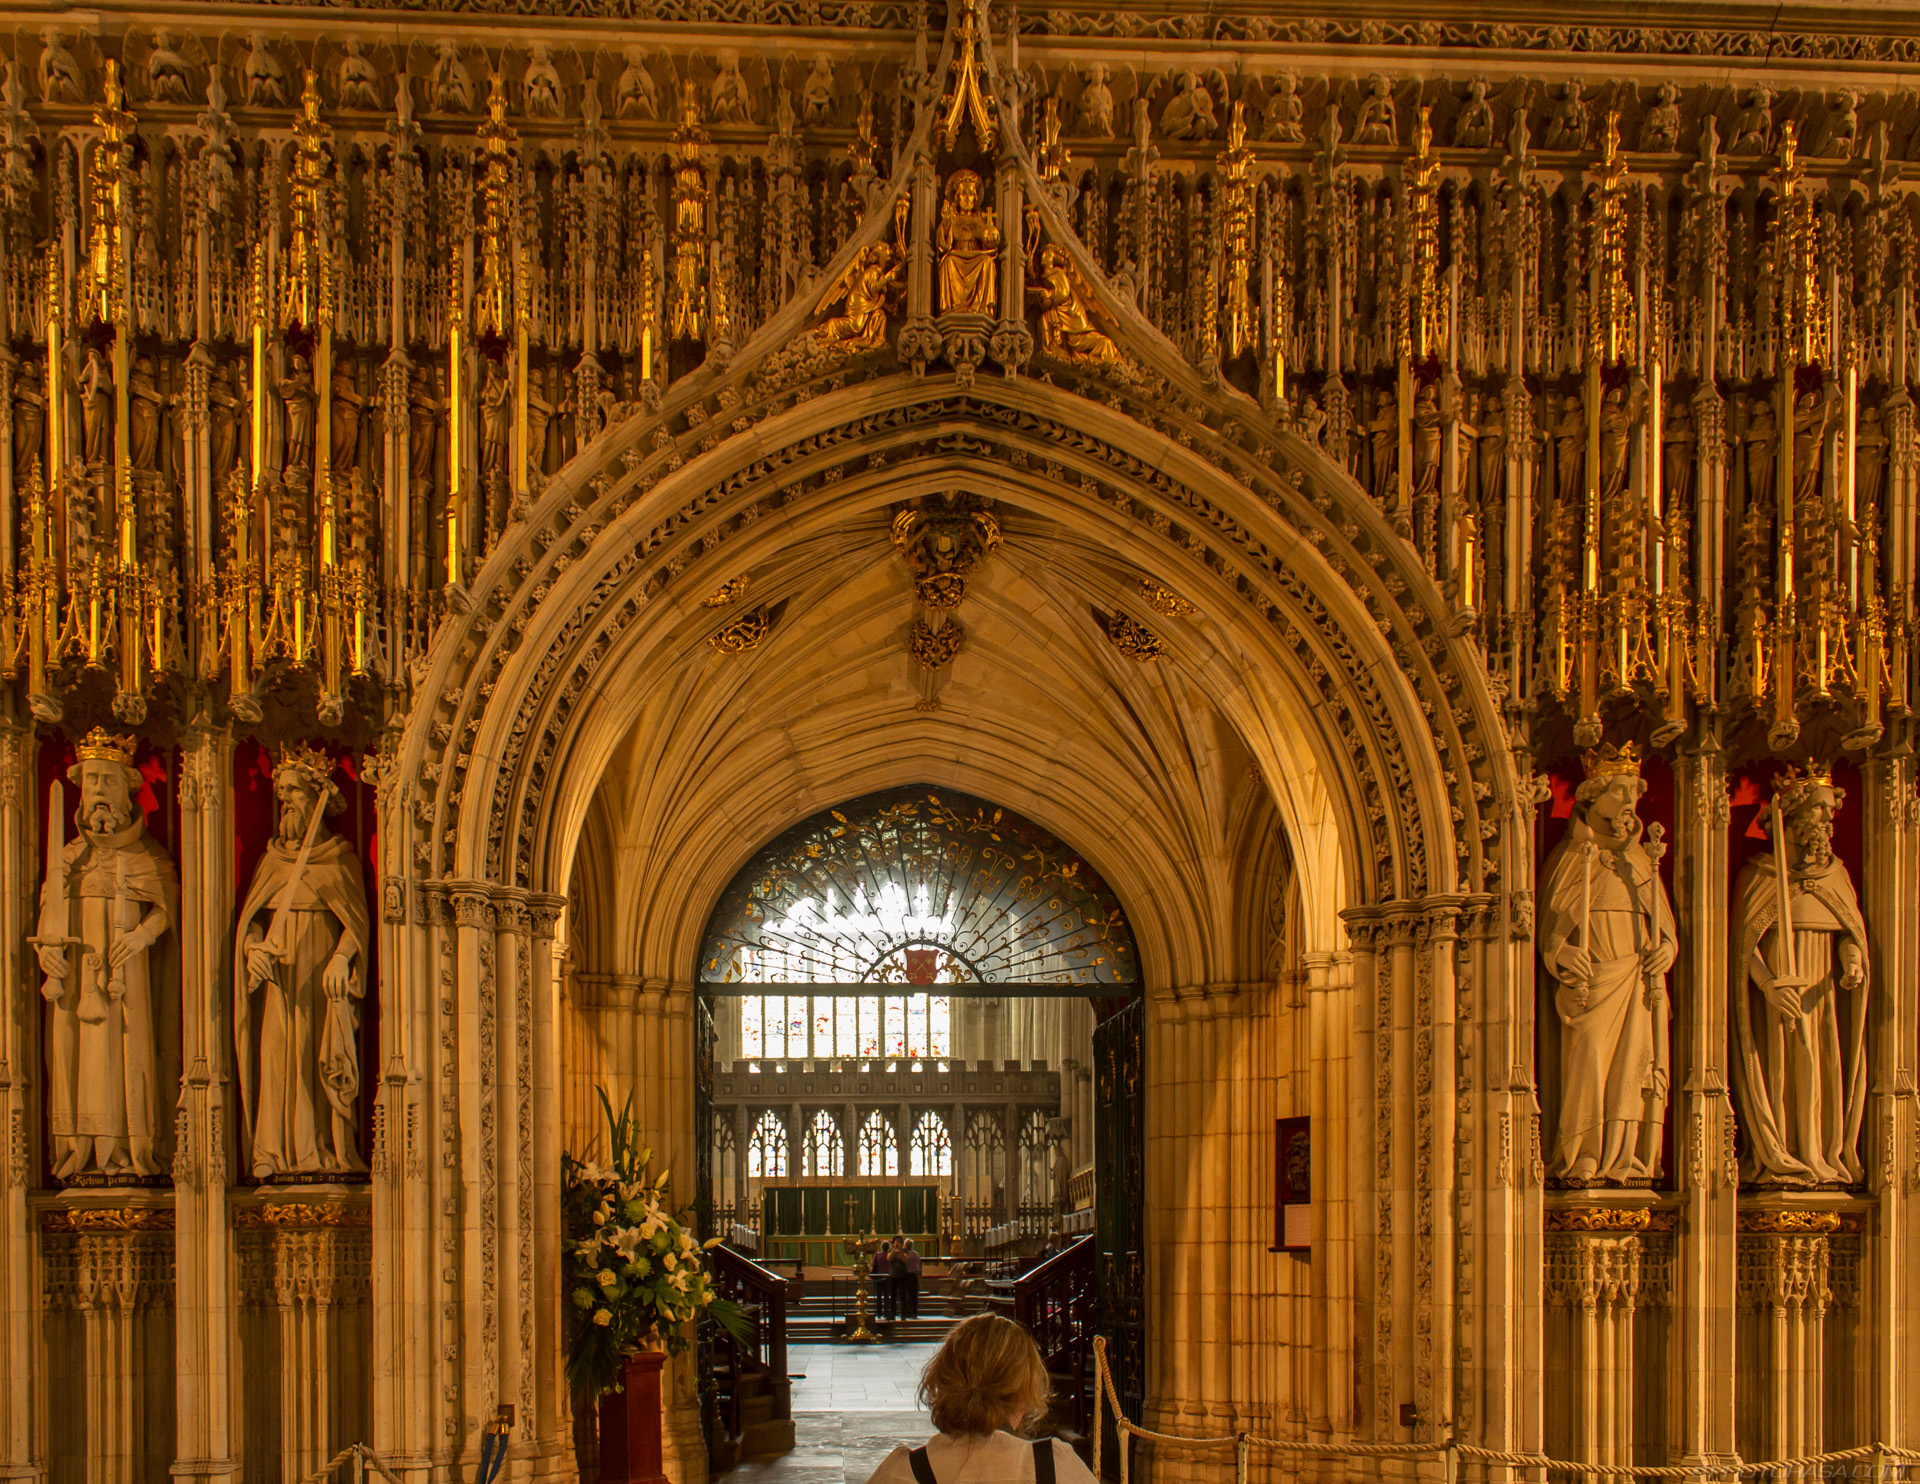 http://photorasa.com/yorkminster-cathedral/ornate-entrance-to-the-choir/